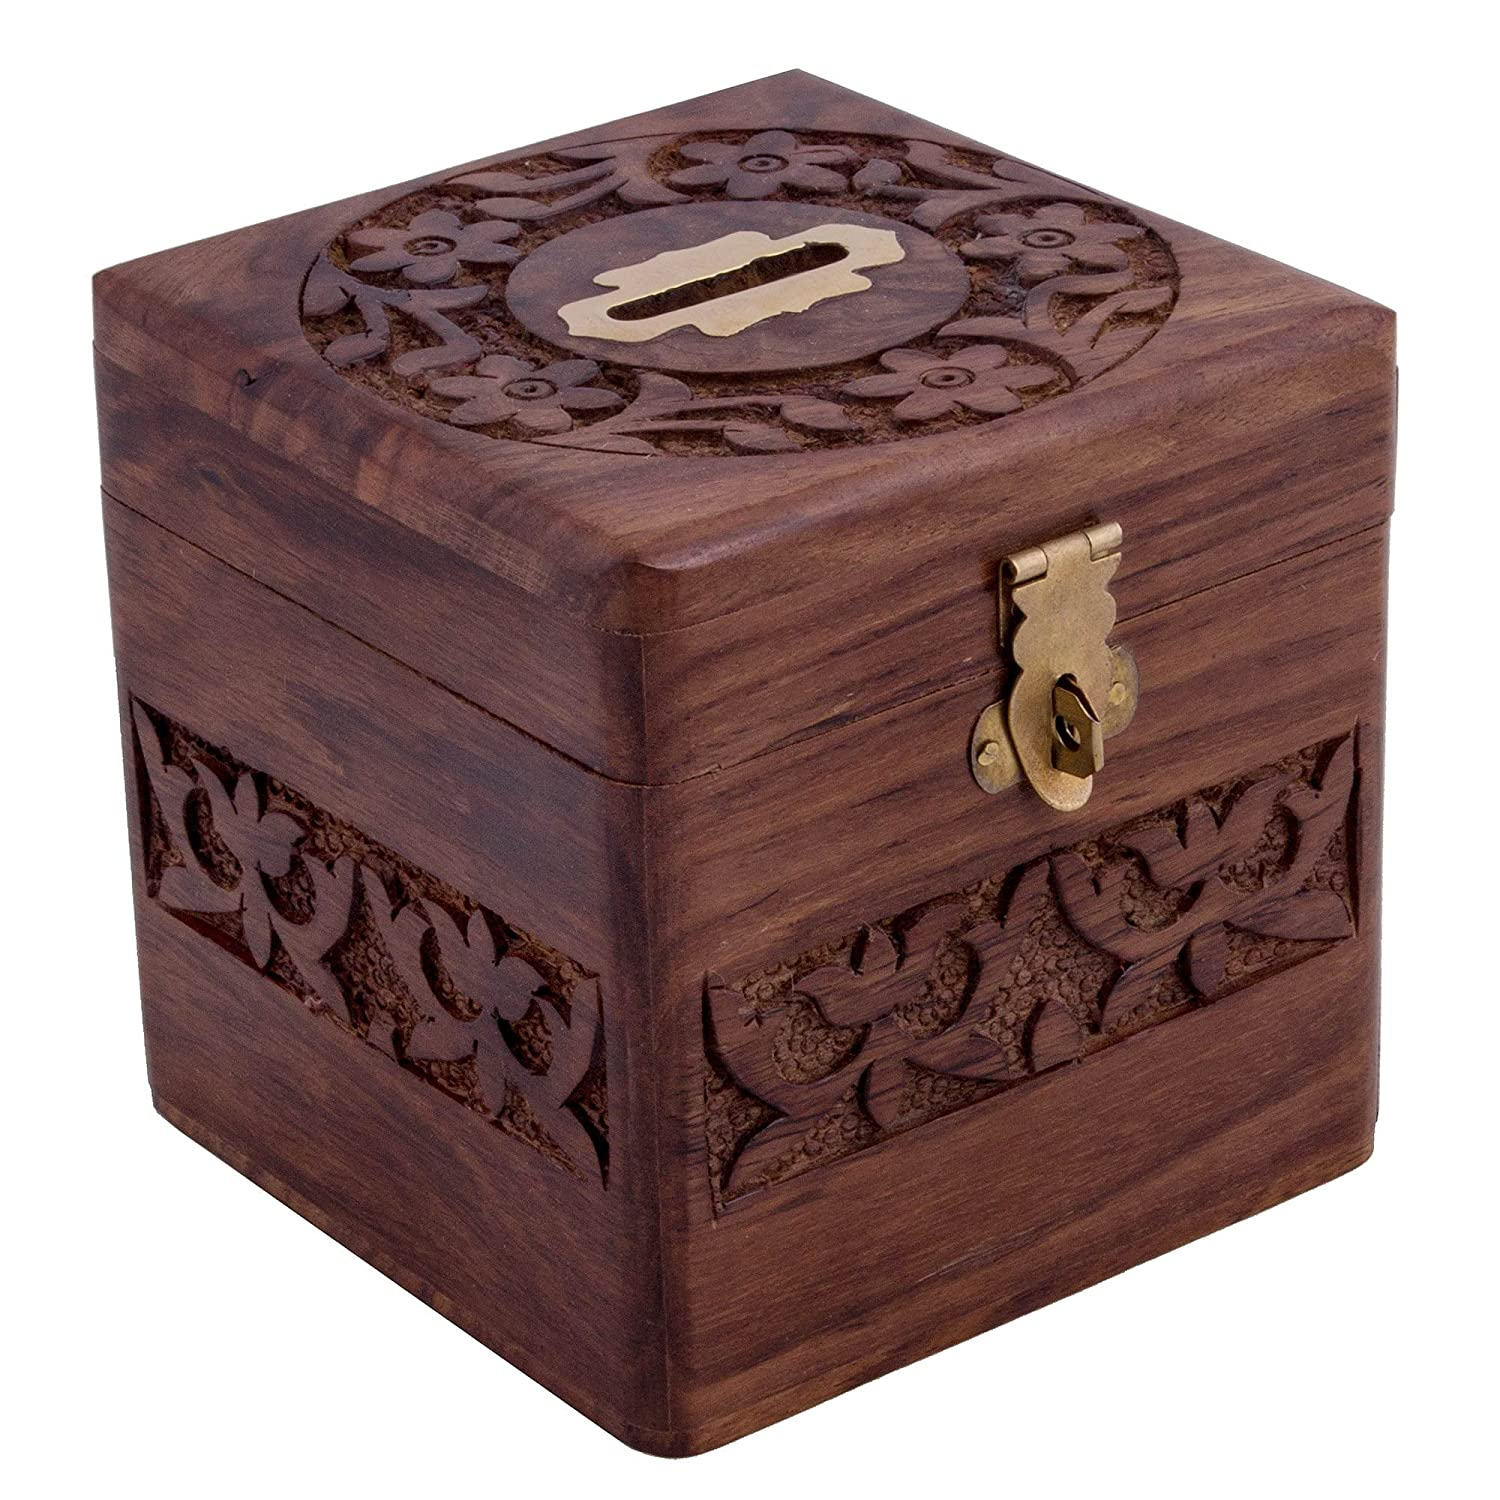 Buy Money Box Buy Online With Best Offers Deals And Discount Coupons